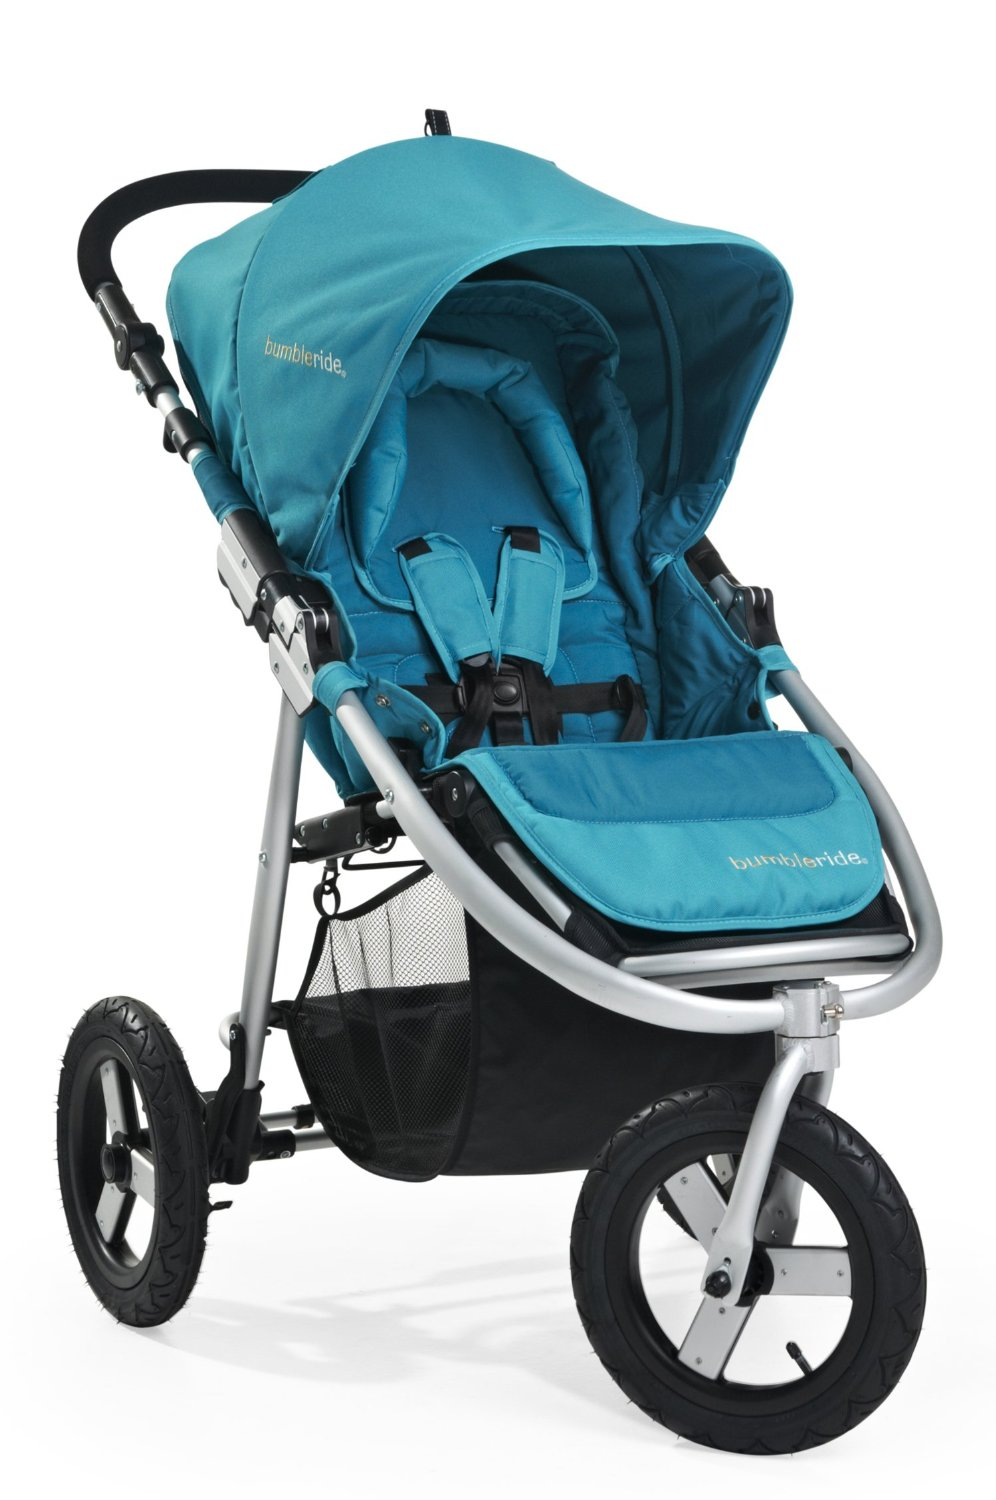 Best Baby Strollers 2014 - The Stroller Site